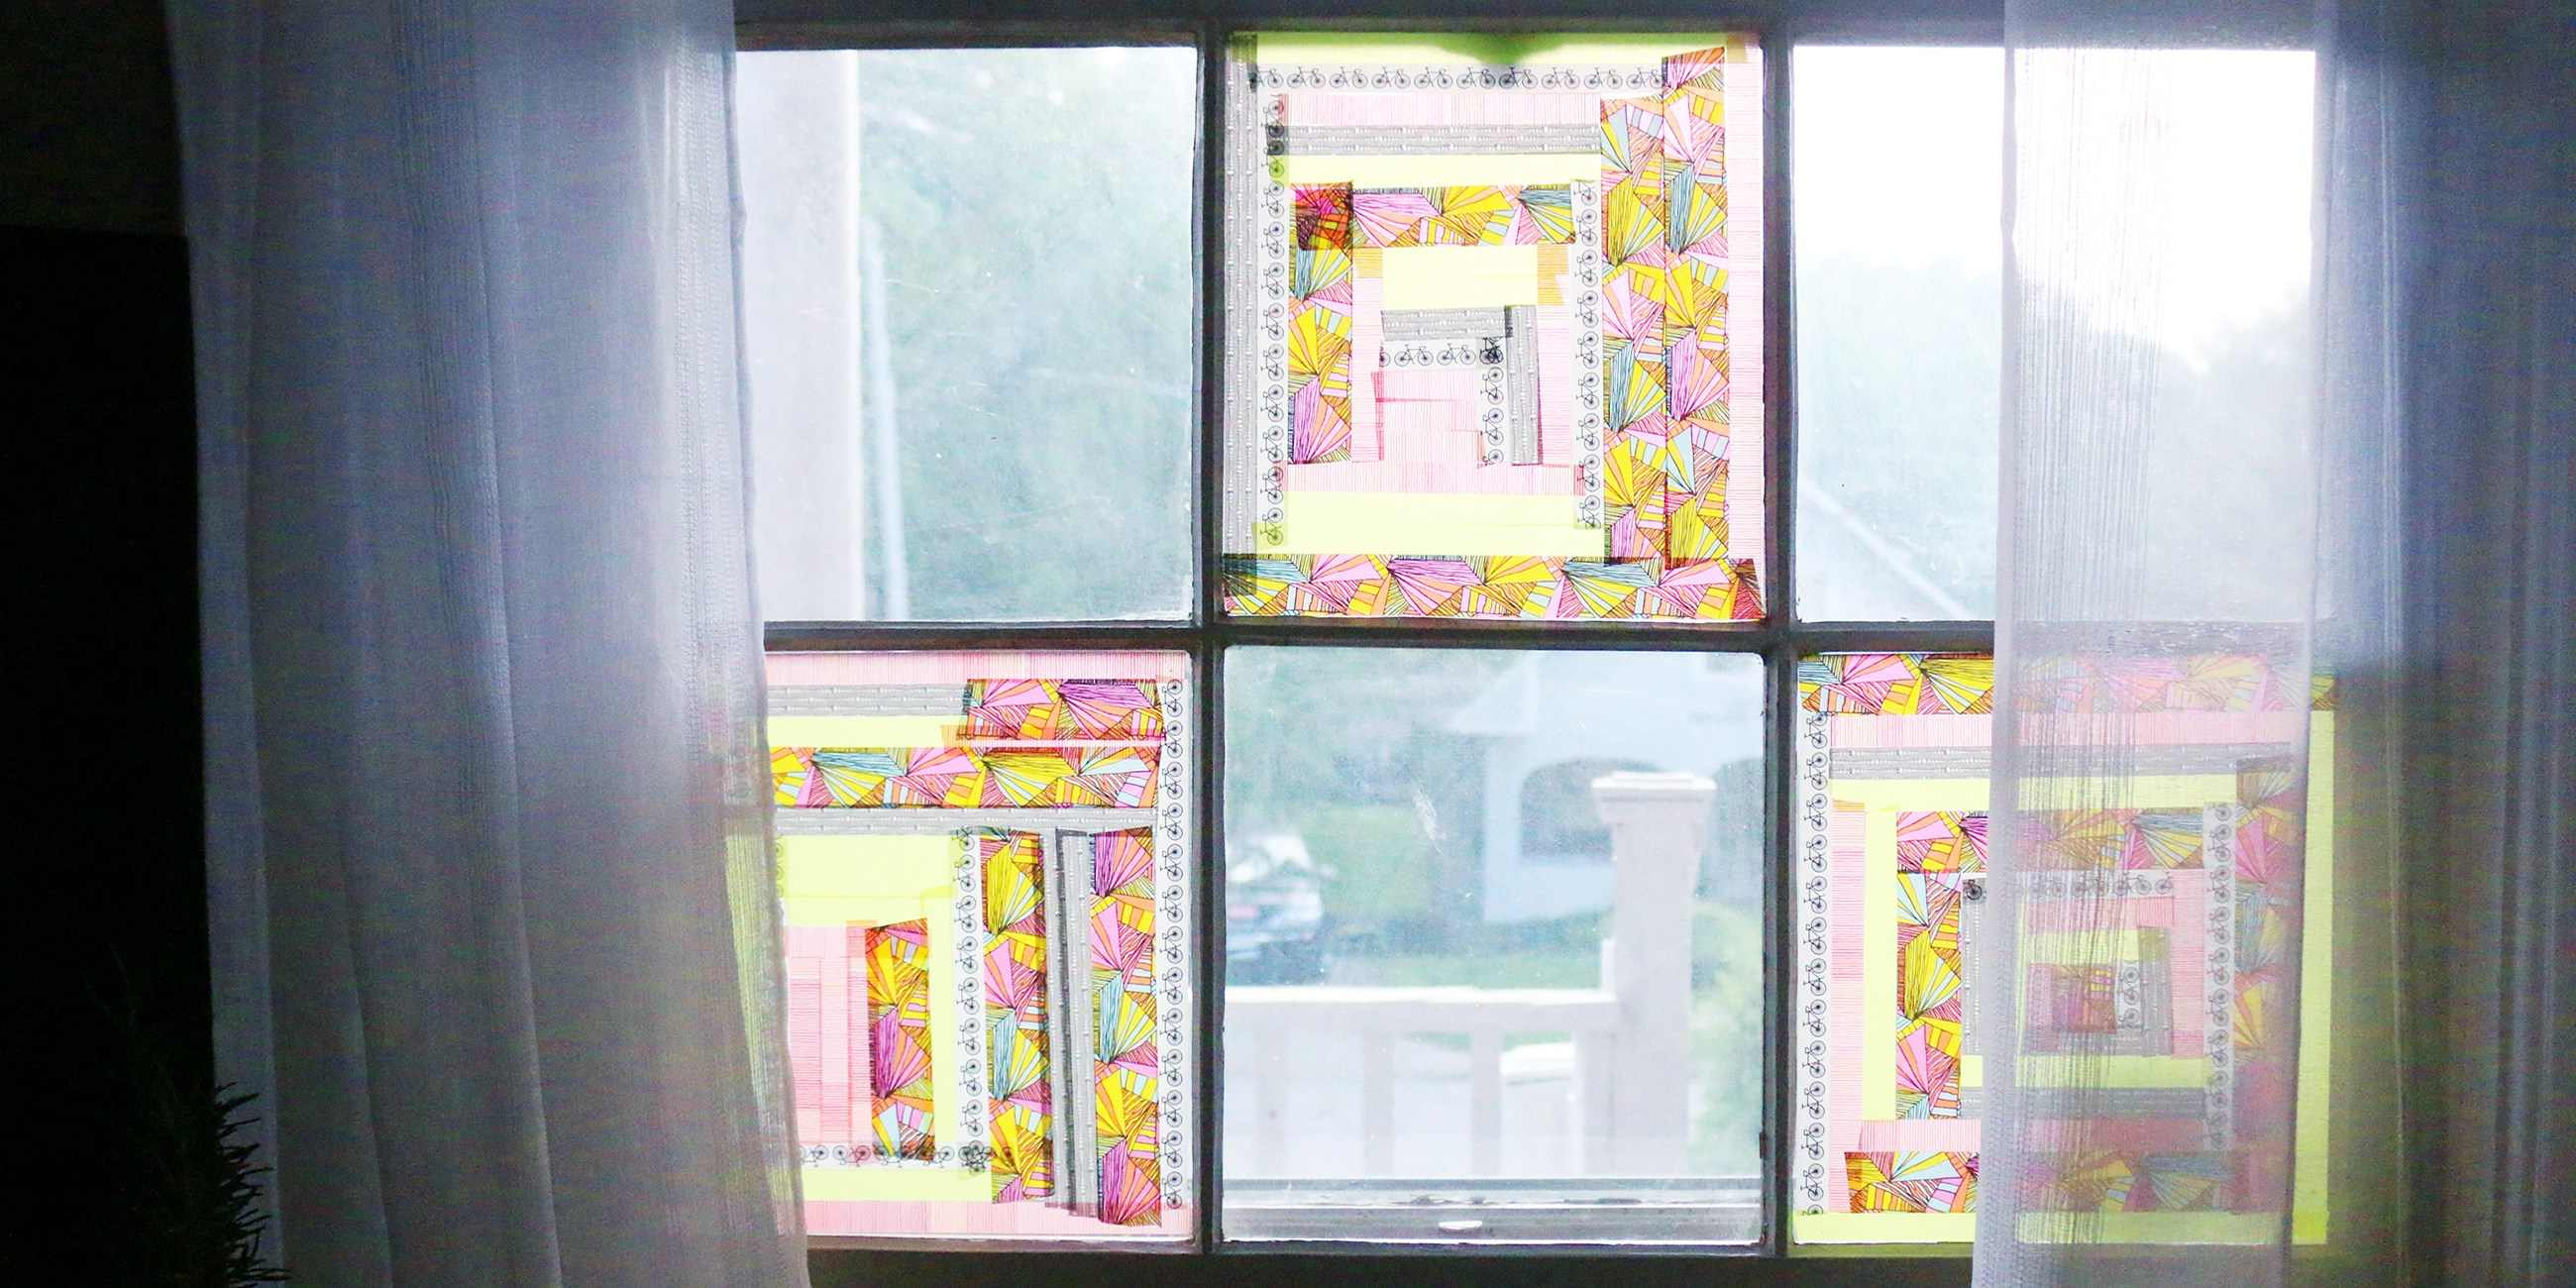 https://www.craftsmile.com/diy-washi-tape-faux-stained-glass-window-i-pXcKN6eMY3NtaWxl.html